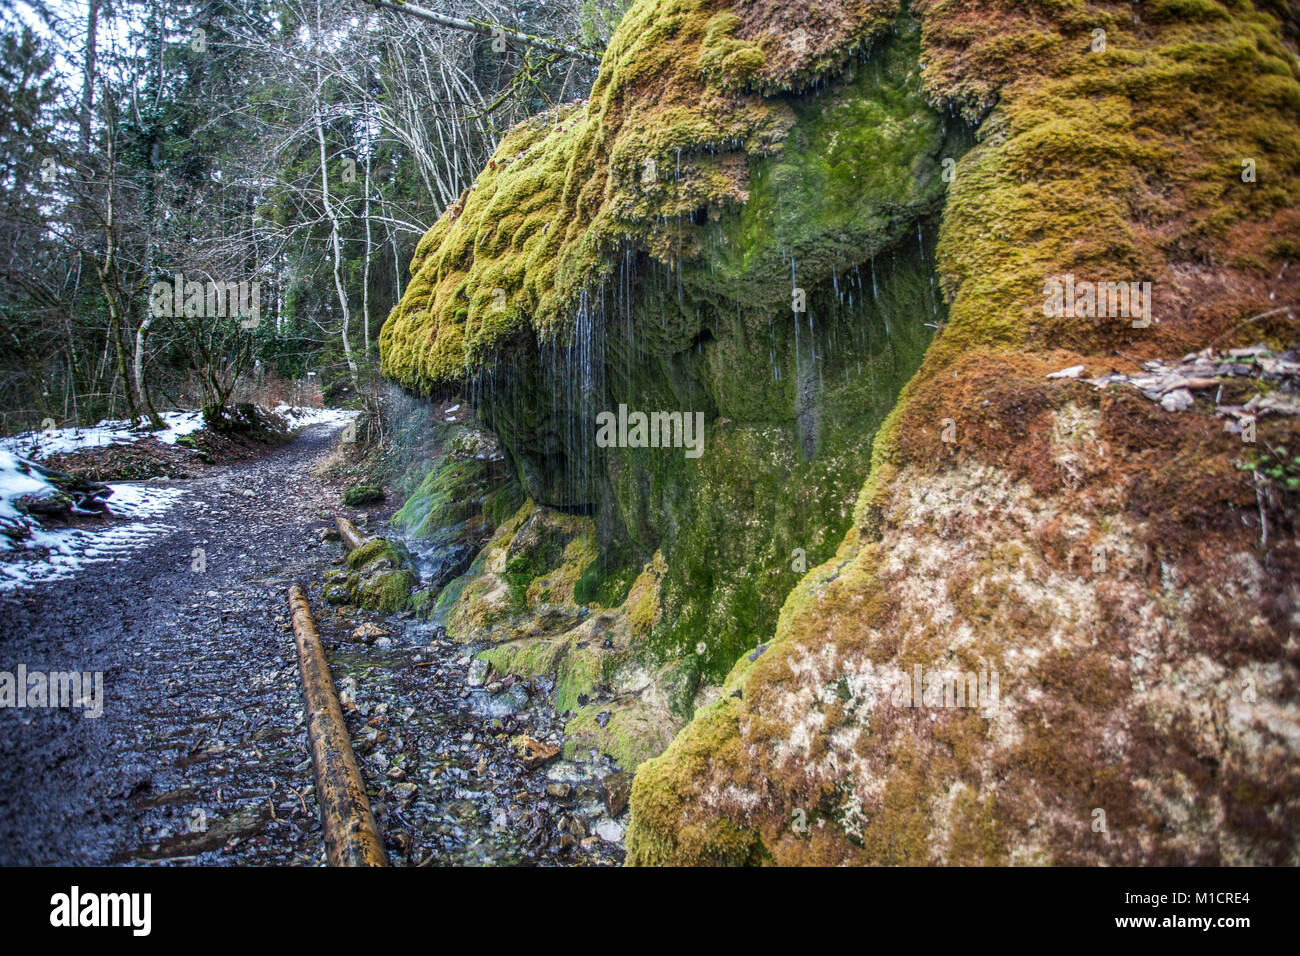 Wassertropfenvorhang at Wutachschlucht in black forest Germany - Stock Image